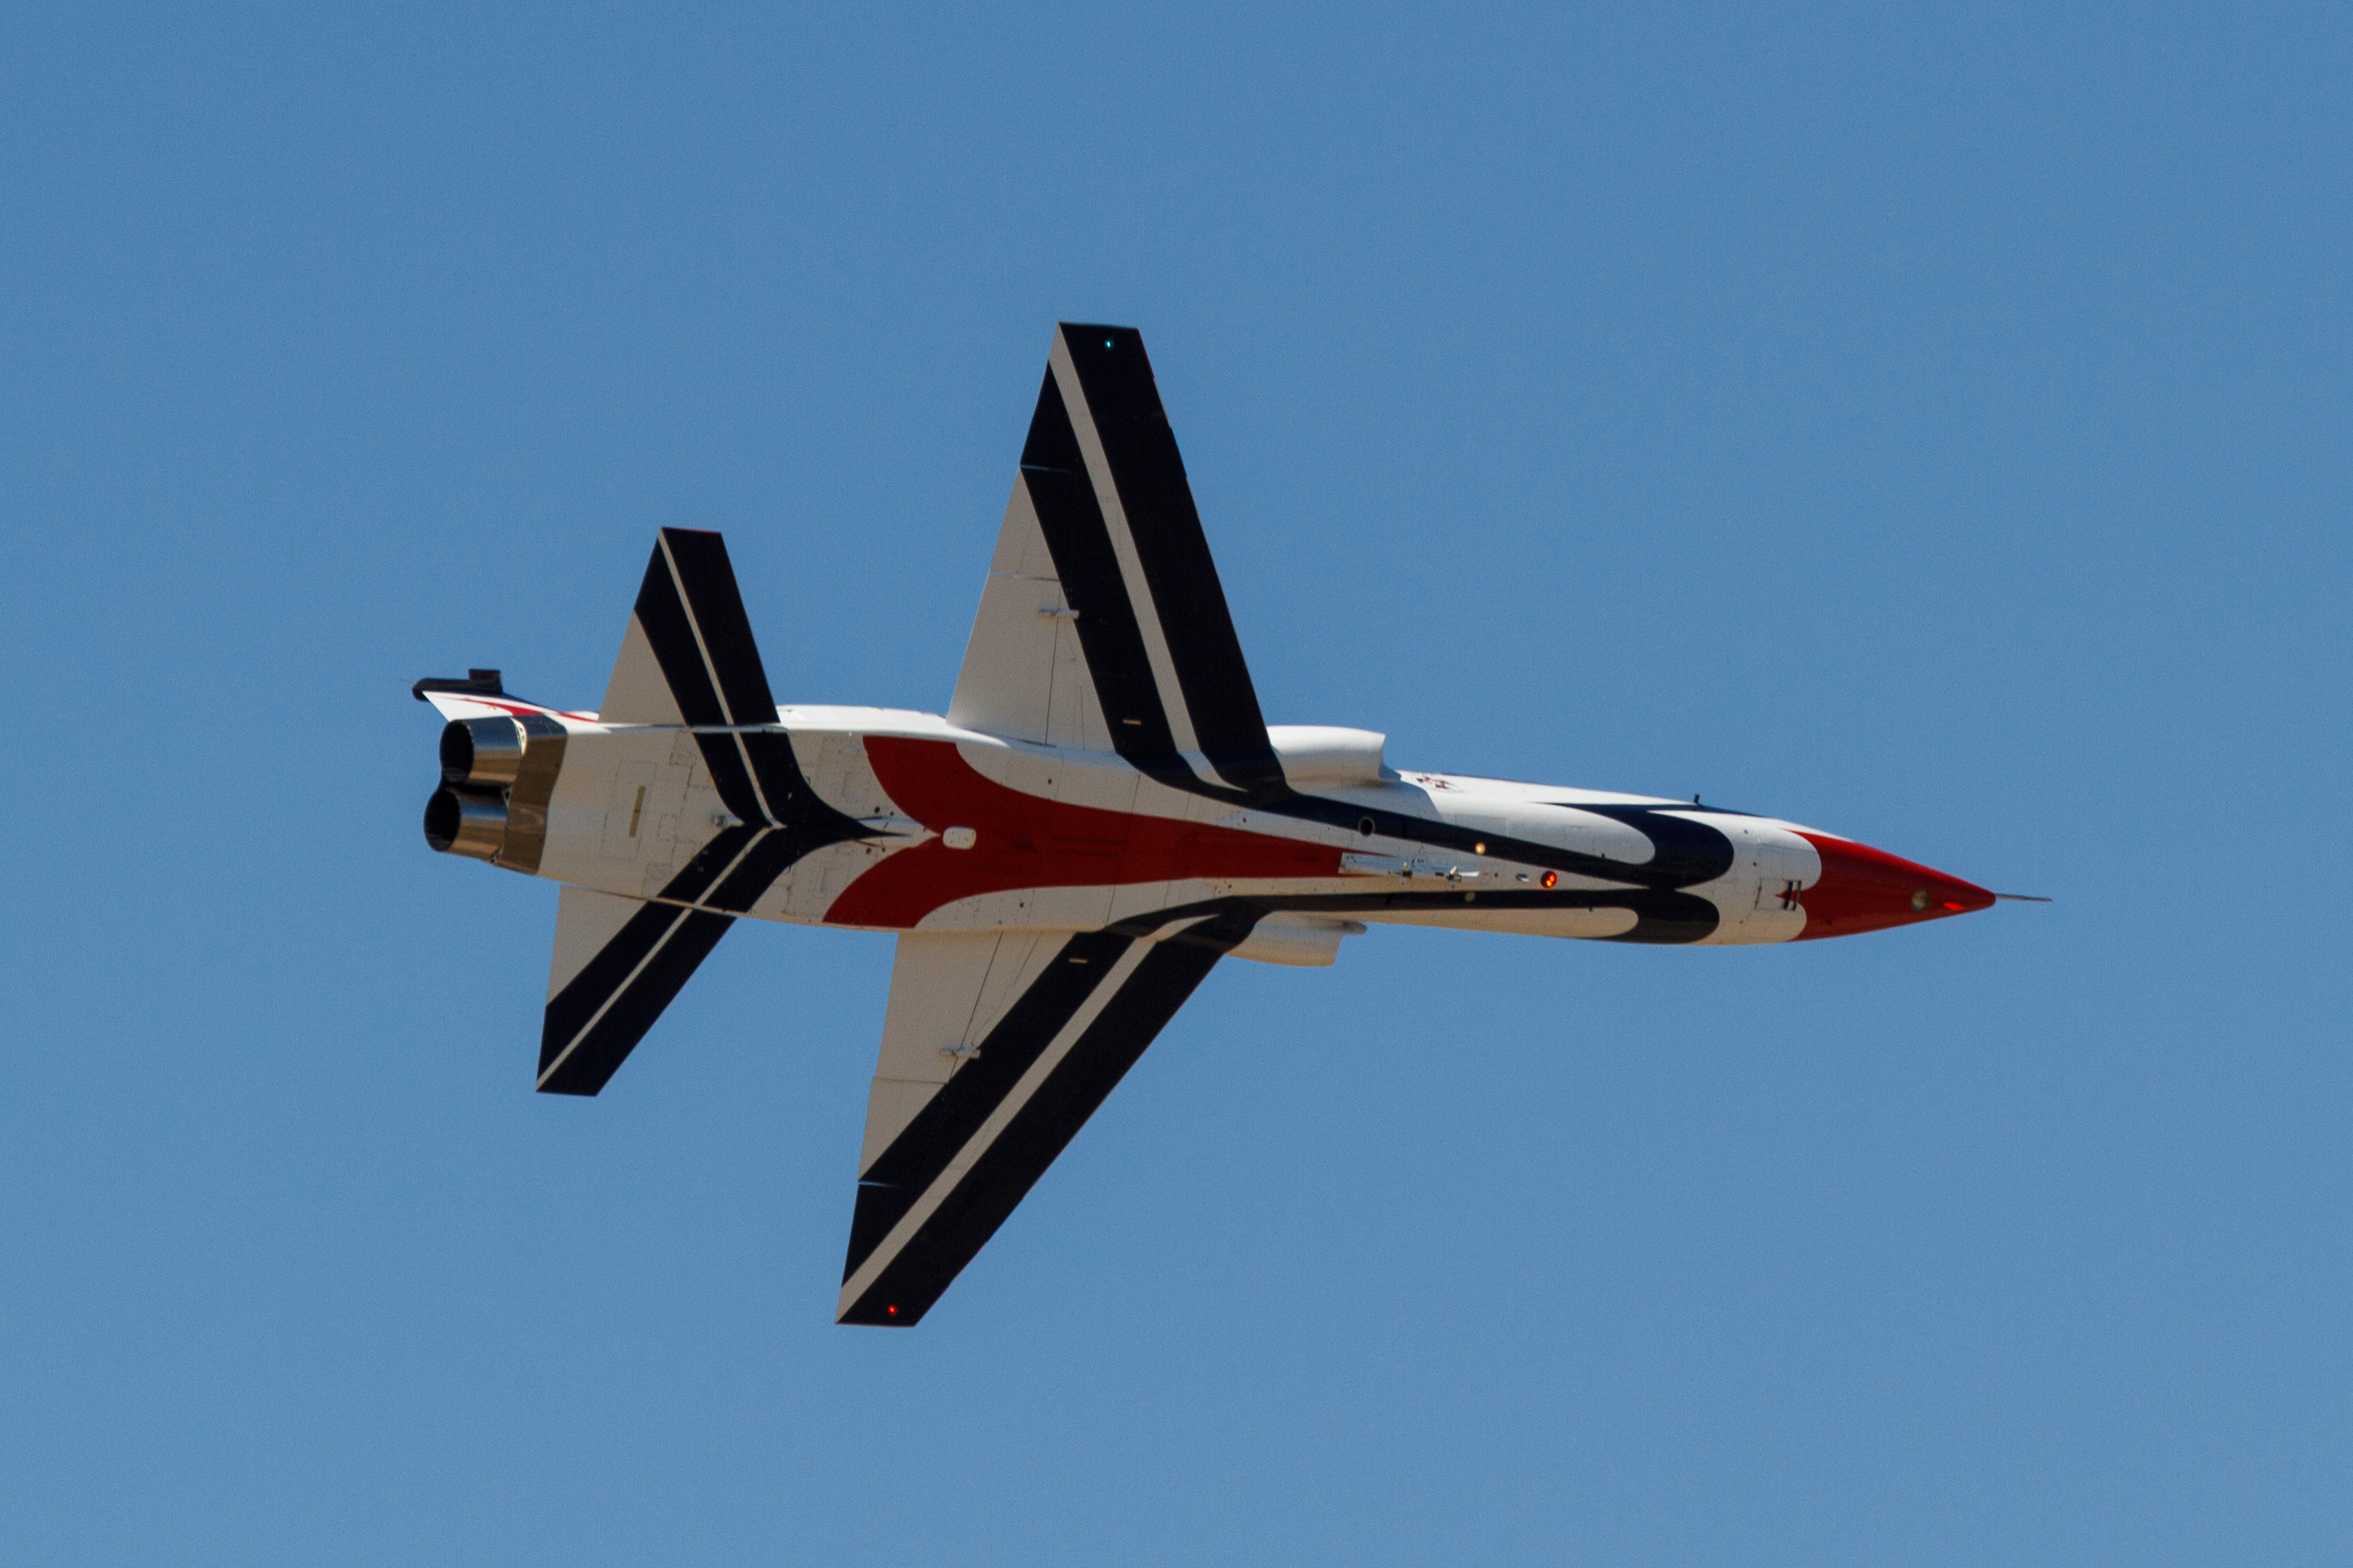 File:20141026 T-38 Talon Alliance Air Show 2014-7.jpg - Wikimedia ...